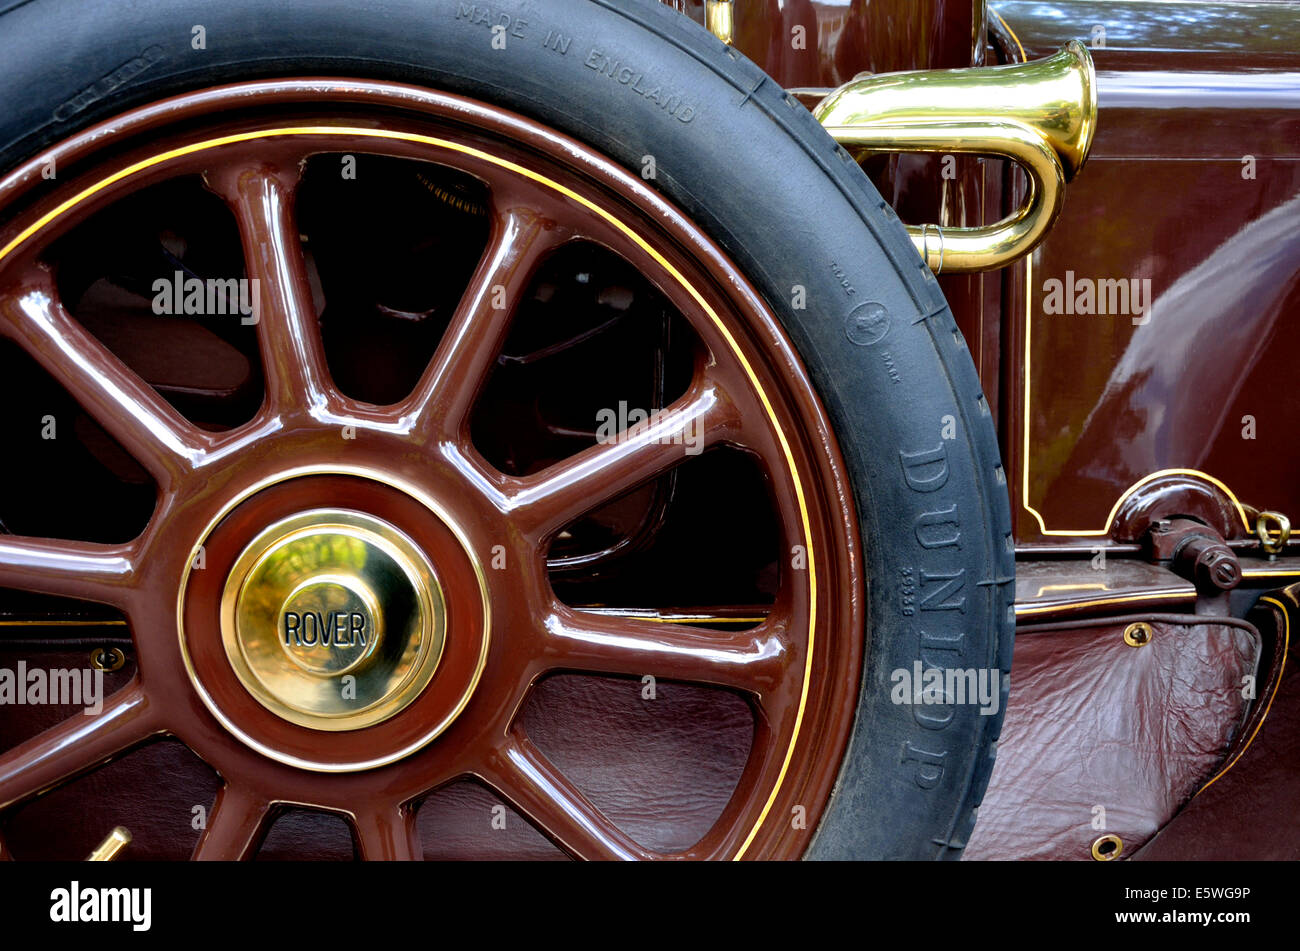 1915 Rover 12hp (BE 3055) detail - Dunlop tyre and Lucas horn - Stock Image